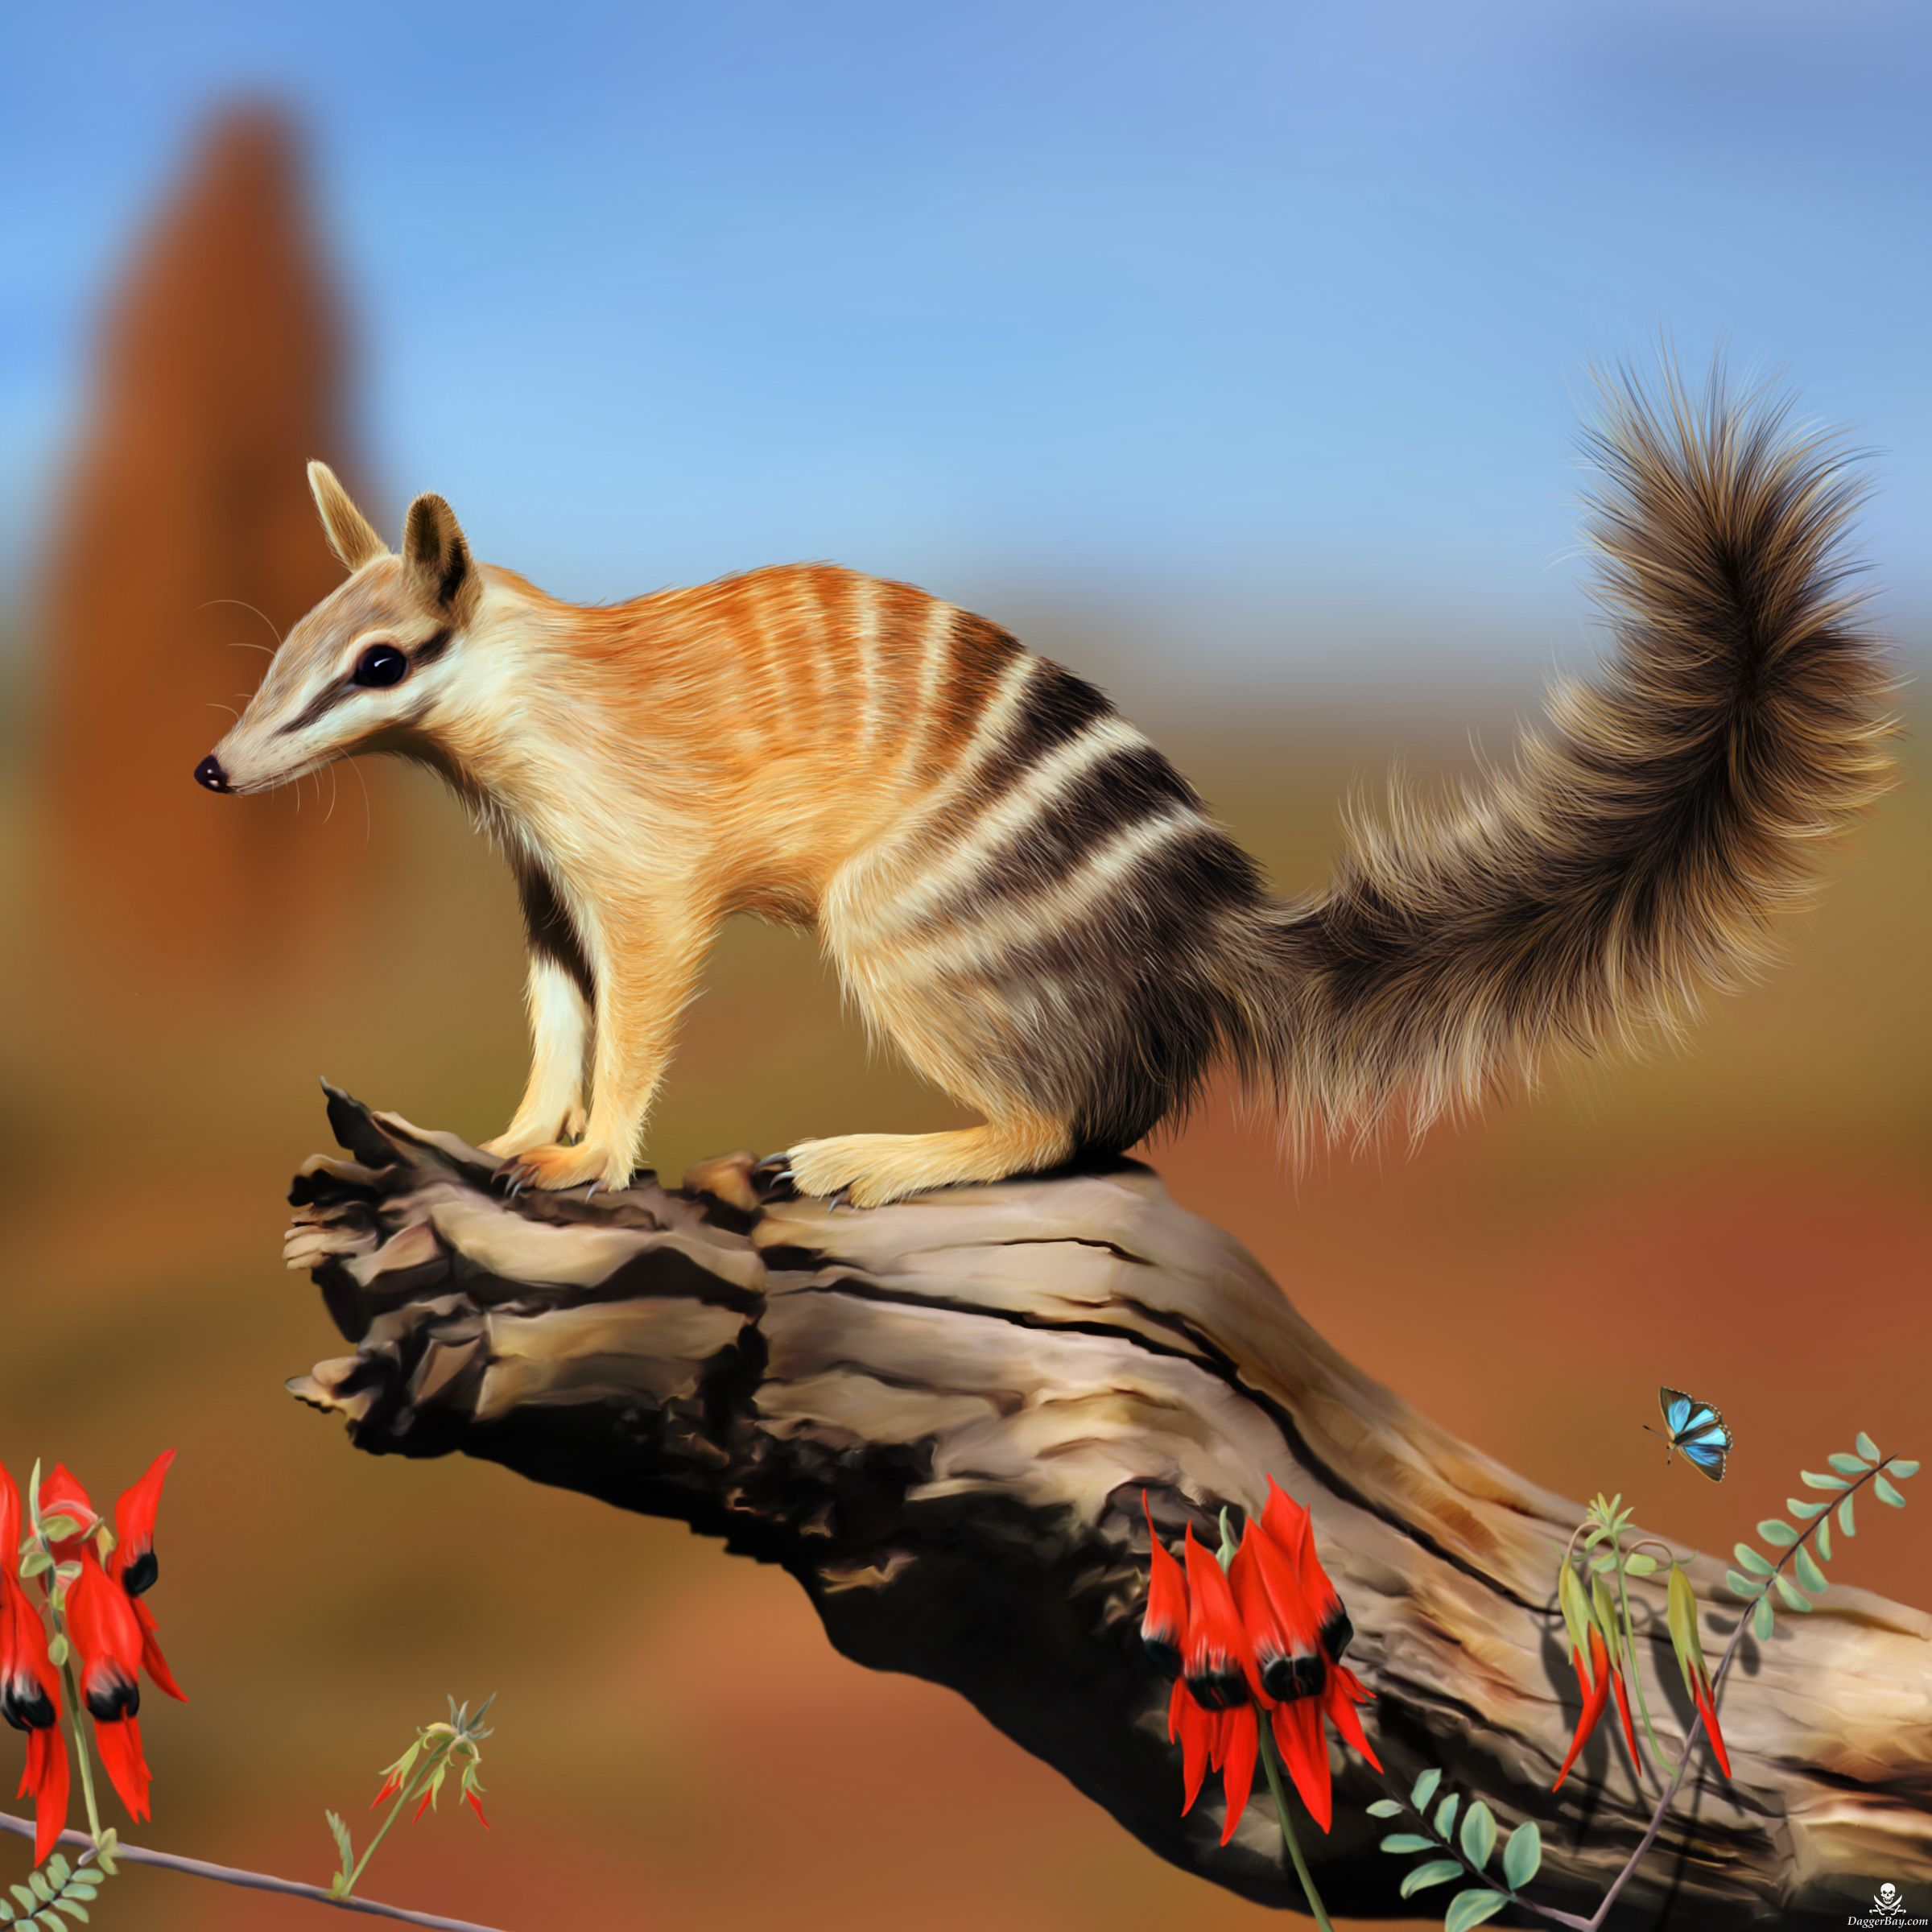 Numbat Photo By Pamelap A Numbat Is A Small Sized Marsupial